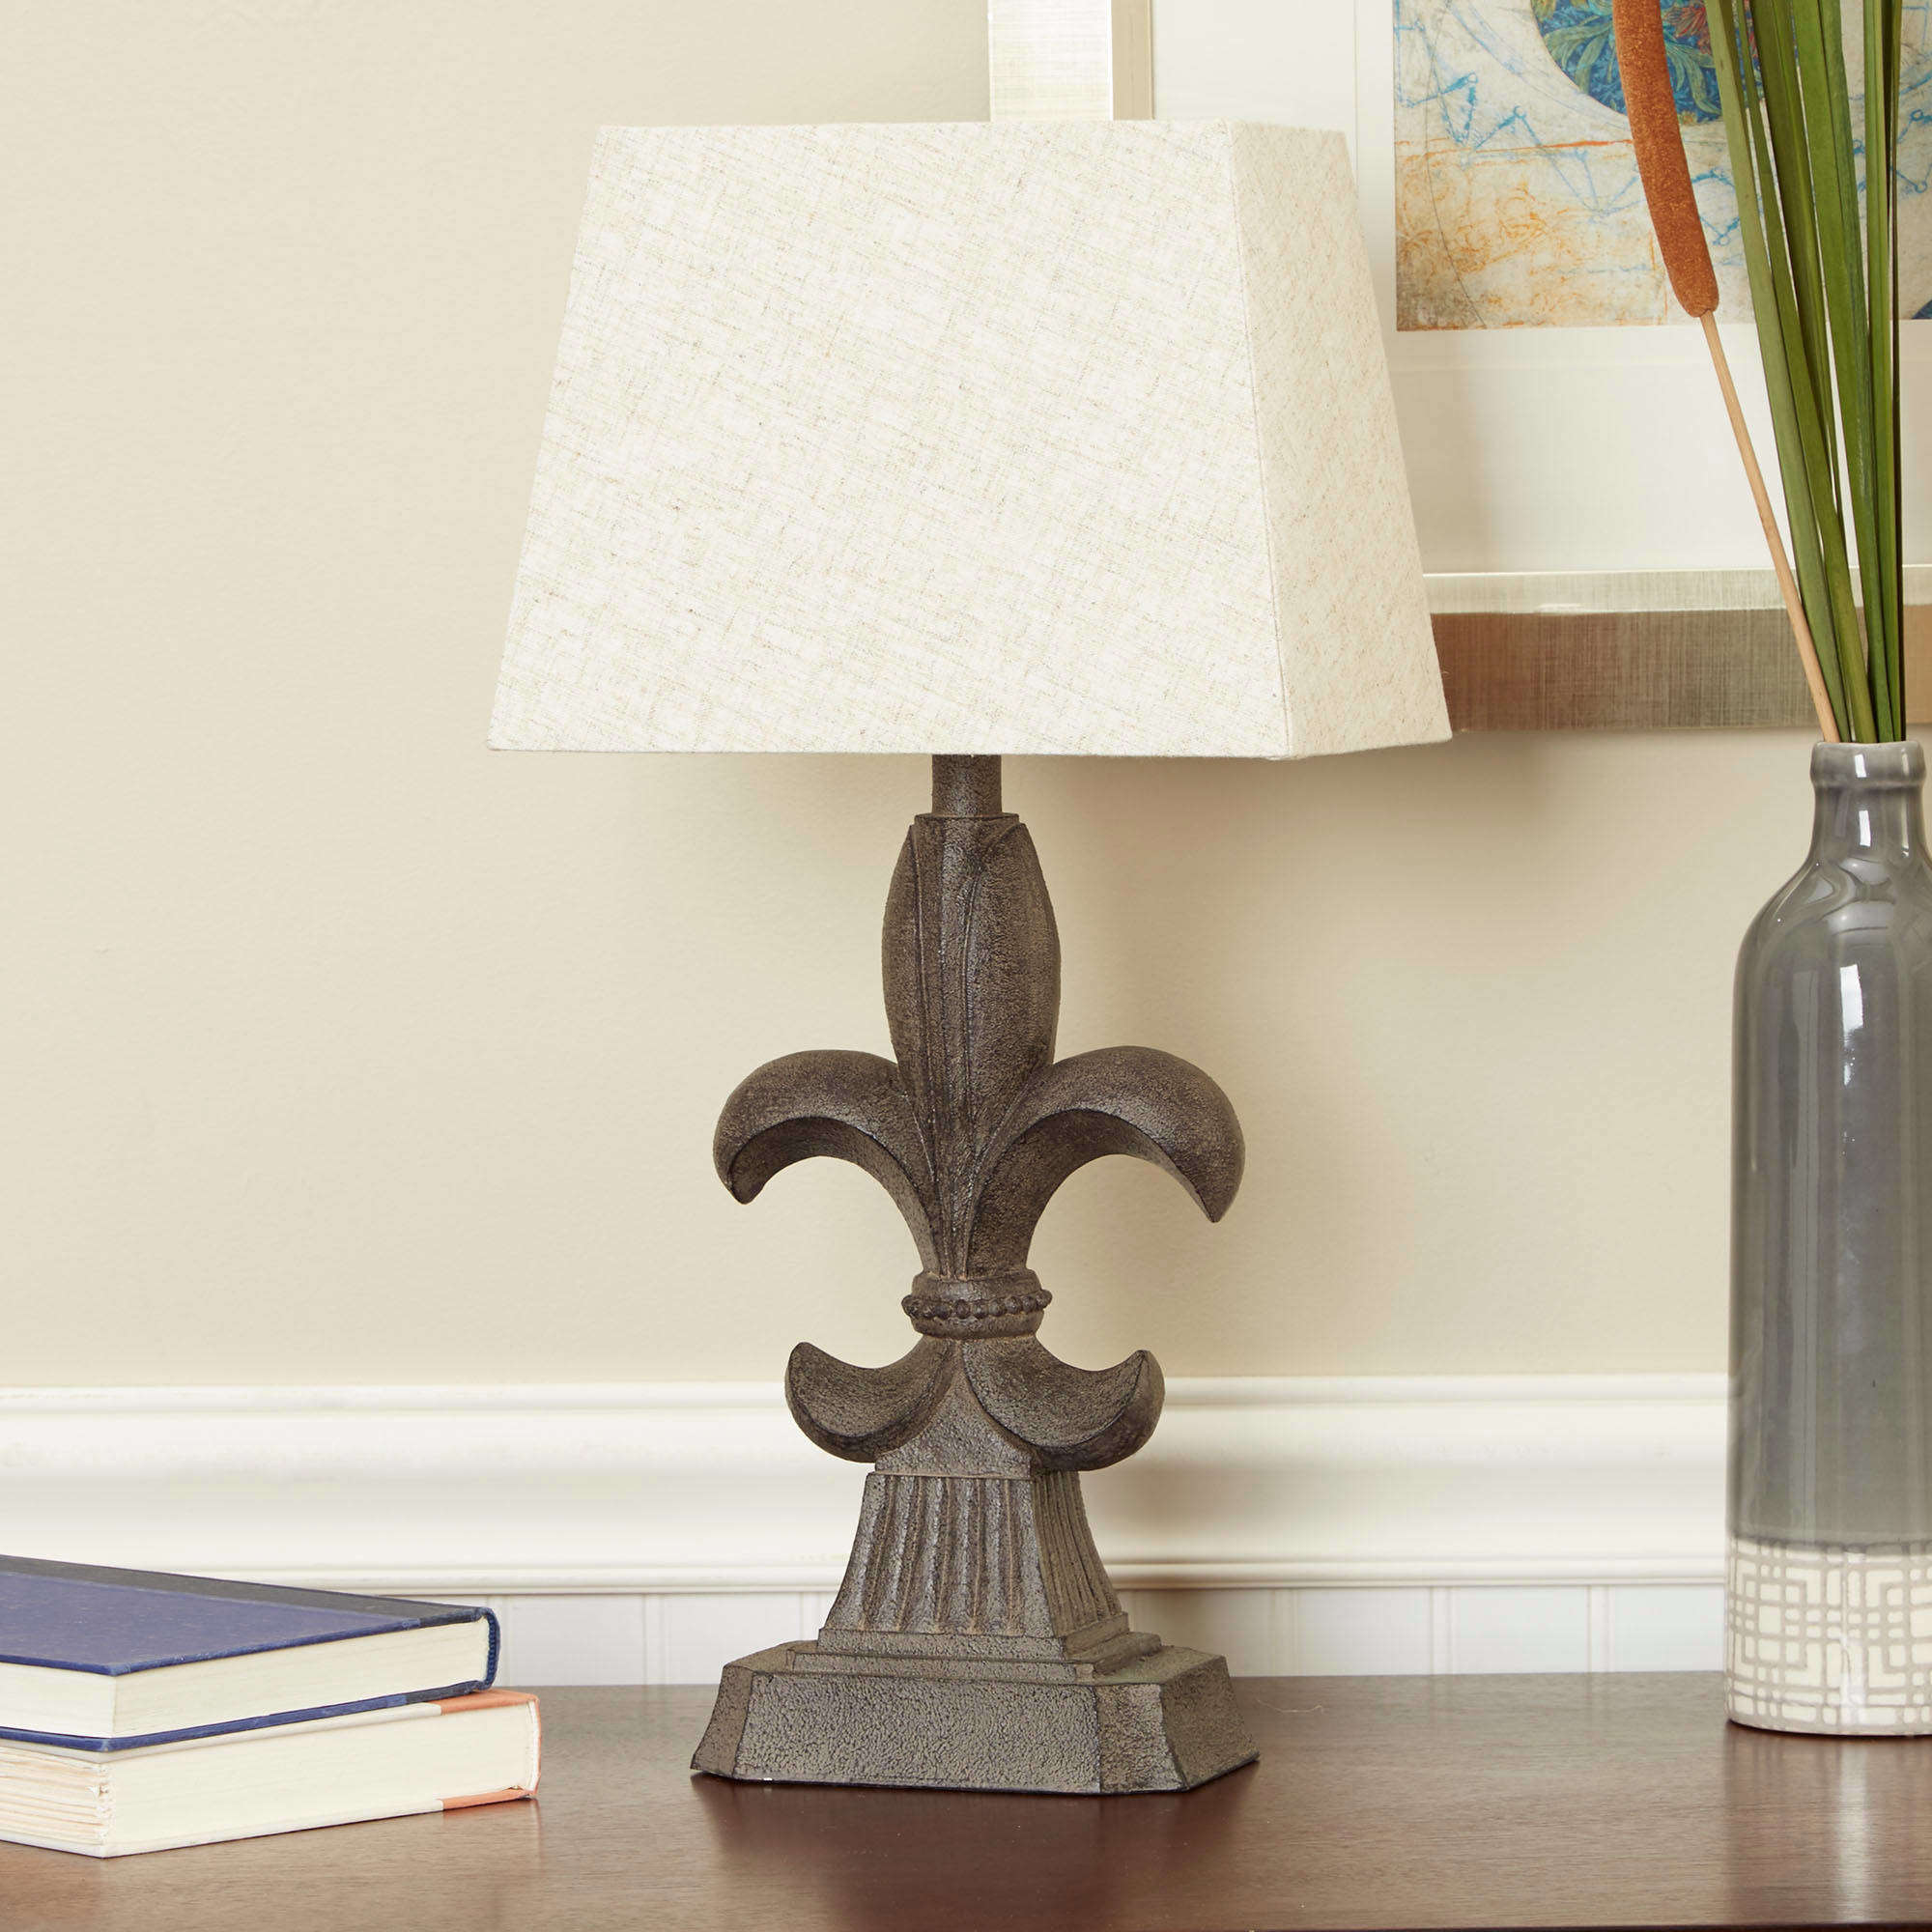 Delightful Better Homes And Gardens Fleur De Lis Accent Table Lamp With Shade